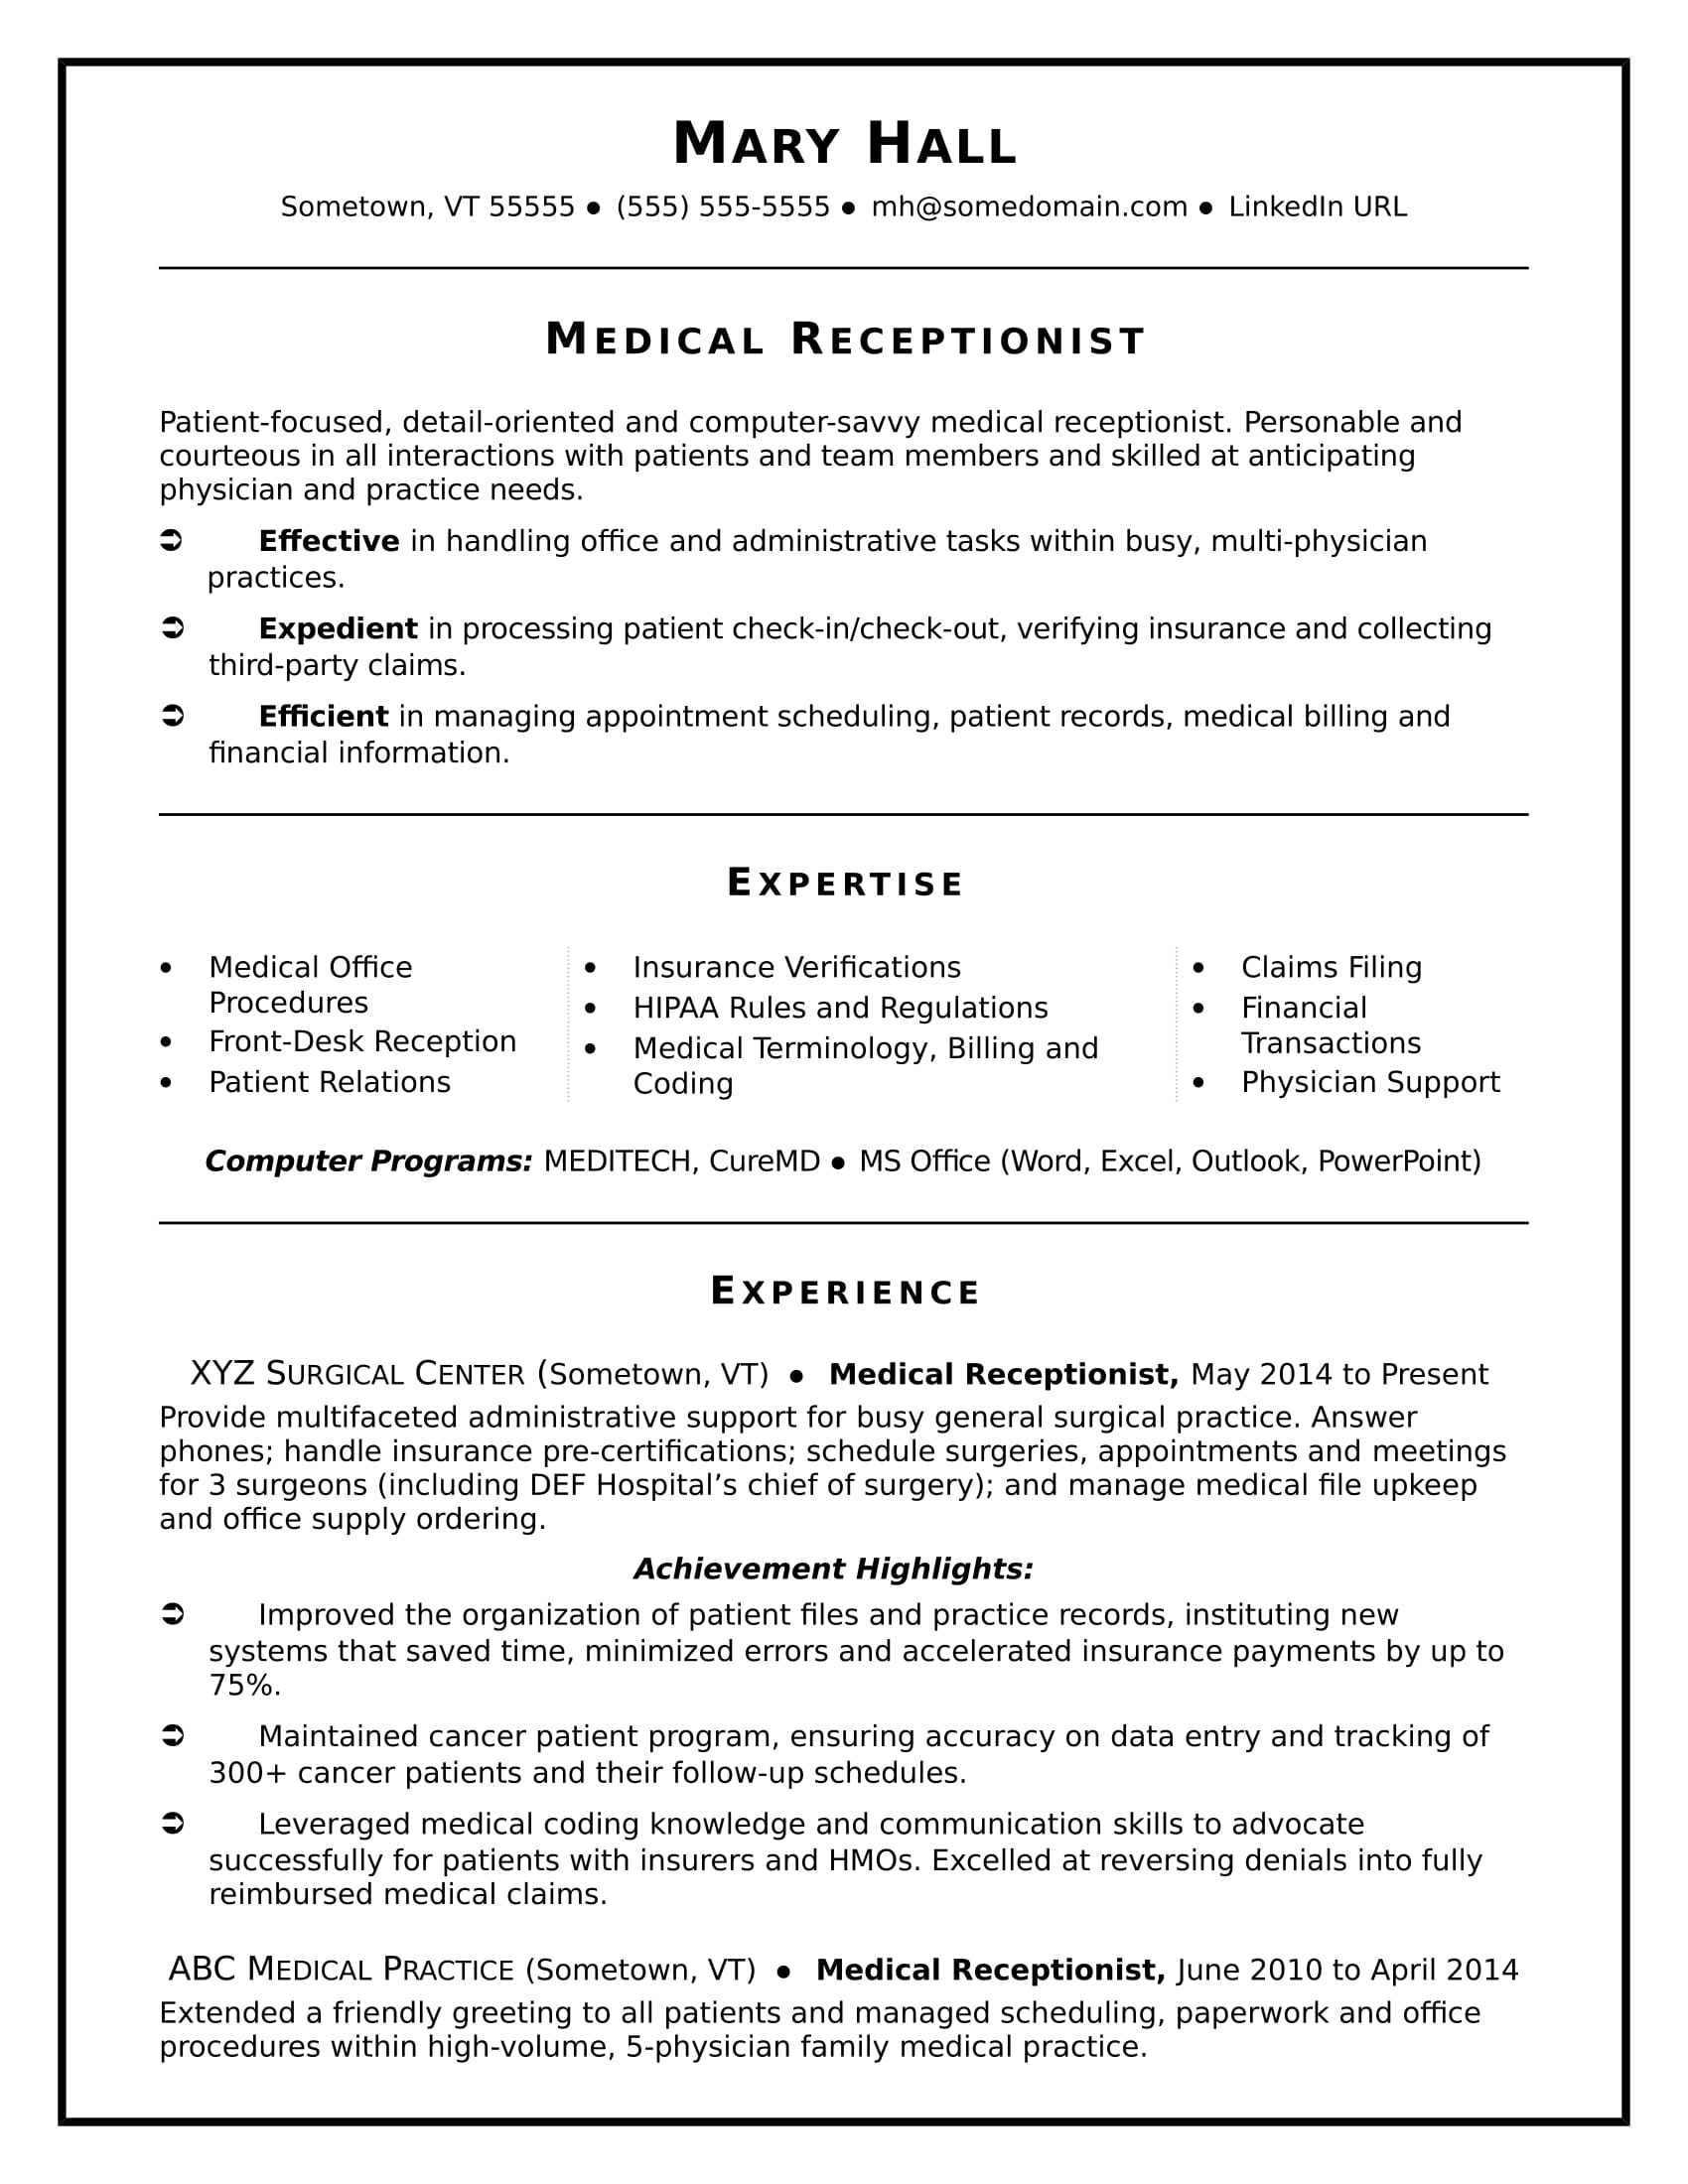 medical receptionist resume sample monster front desk job free templates with photo place Resume Front Desk Job Resume